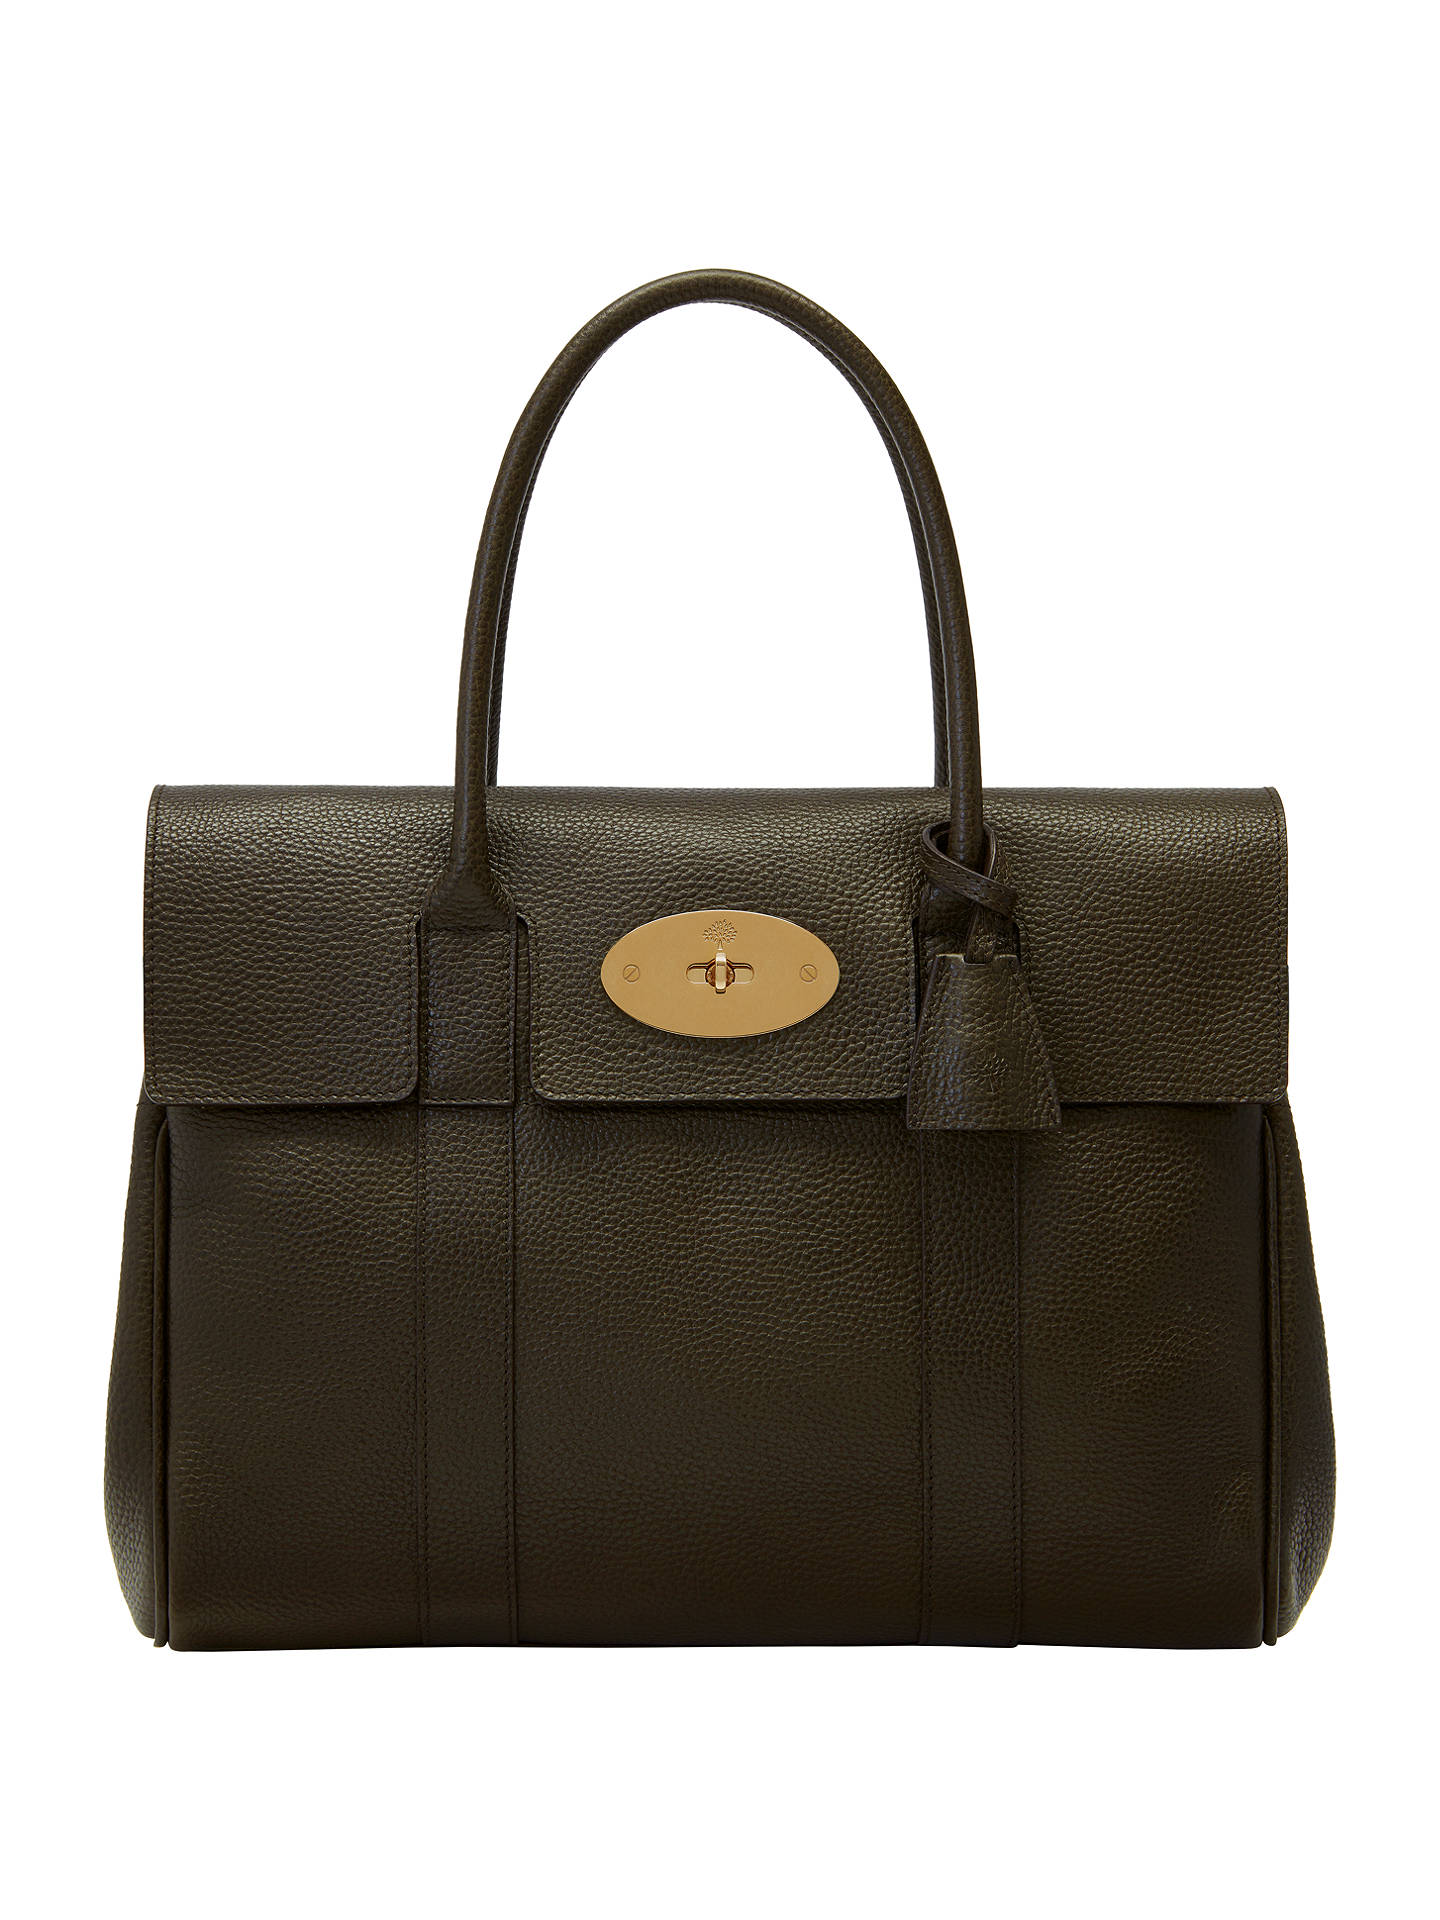 BuyMulberry Bayswater Grained Veg Tanned Leather Grab Bag dd030a40e2566